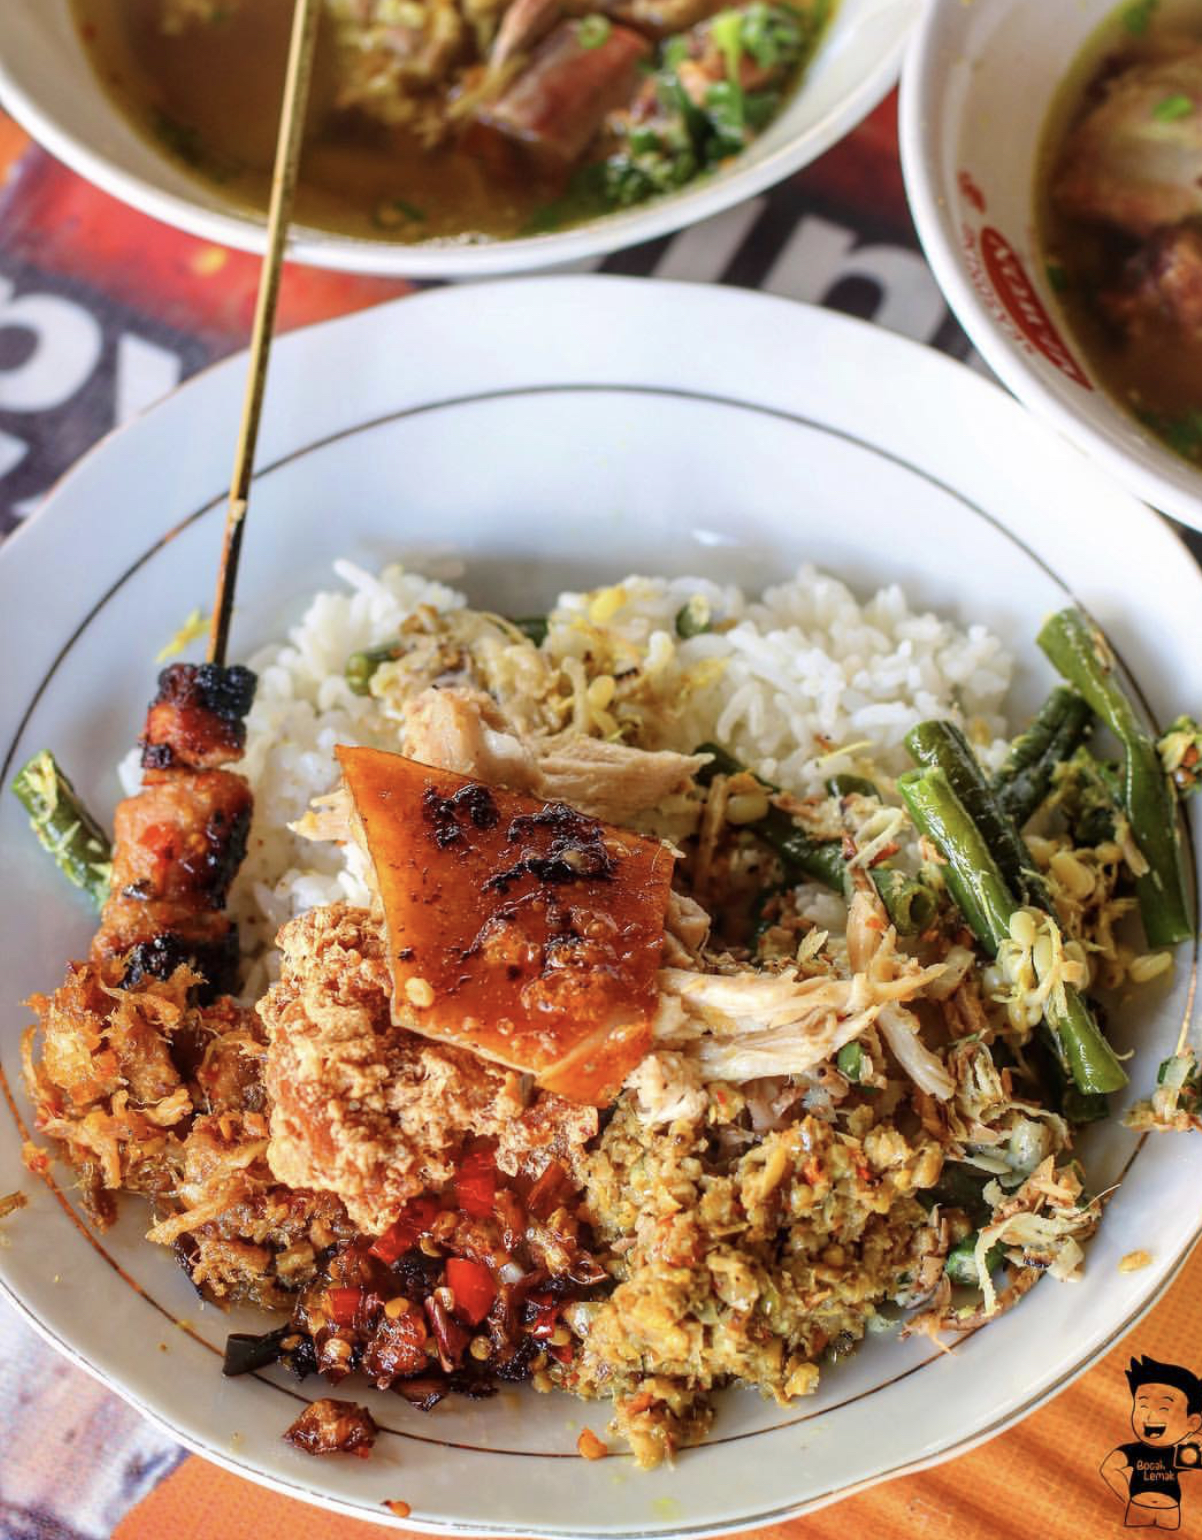 Delicious Balinese Food And Best Restaurant To Visit In Bali. Restaurants you should visit when traveling to Ubud, Bali.